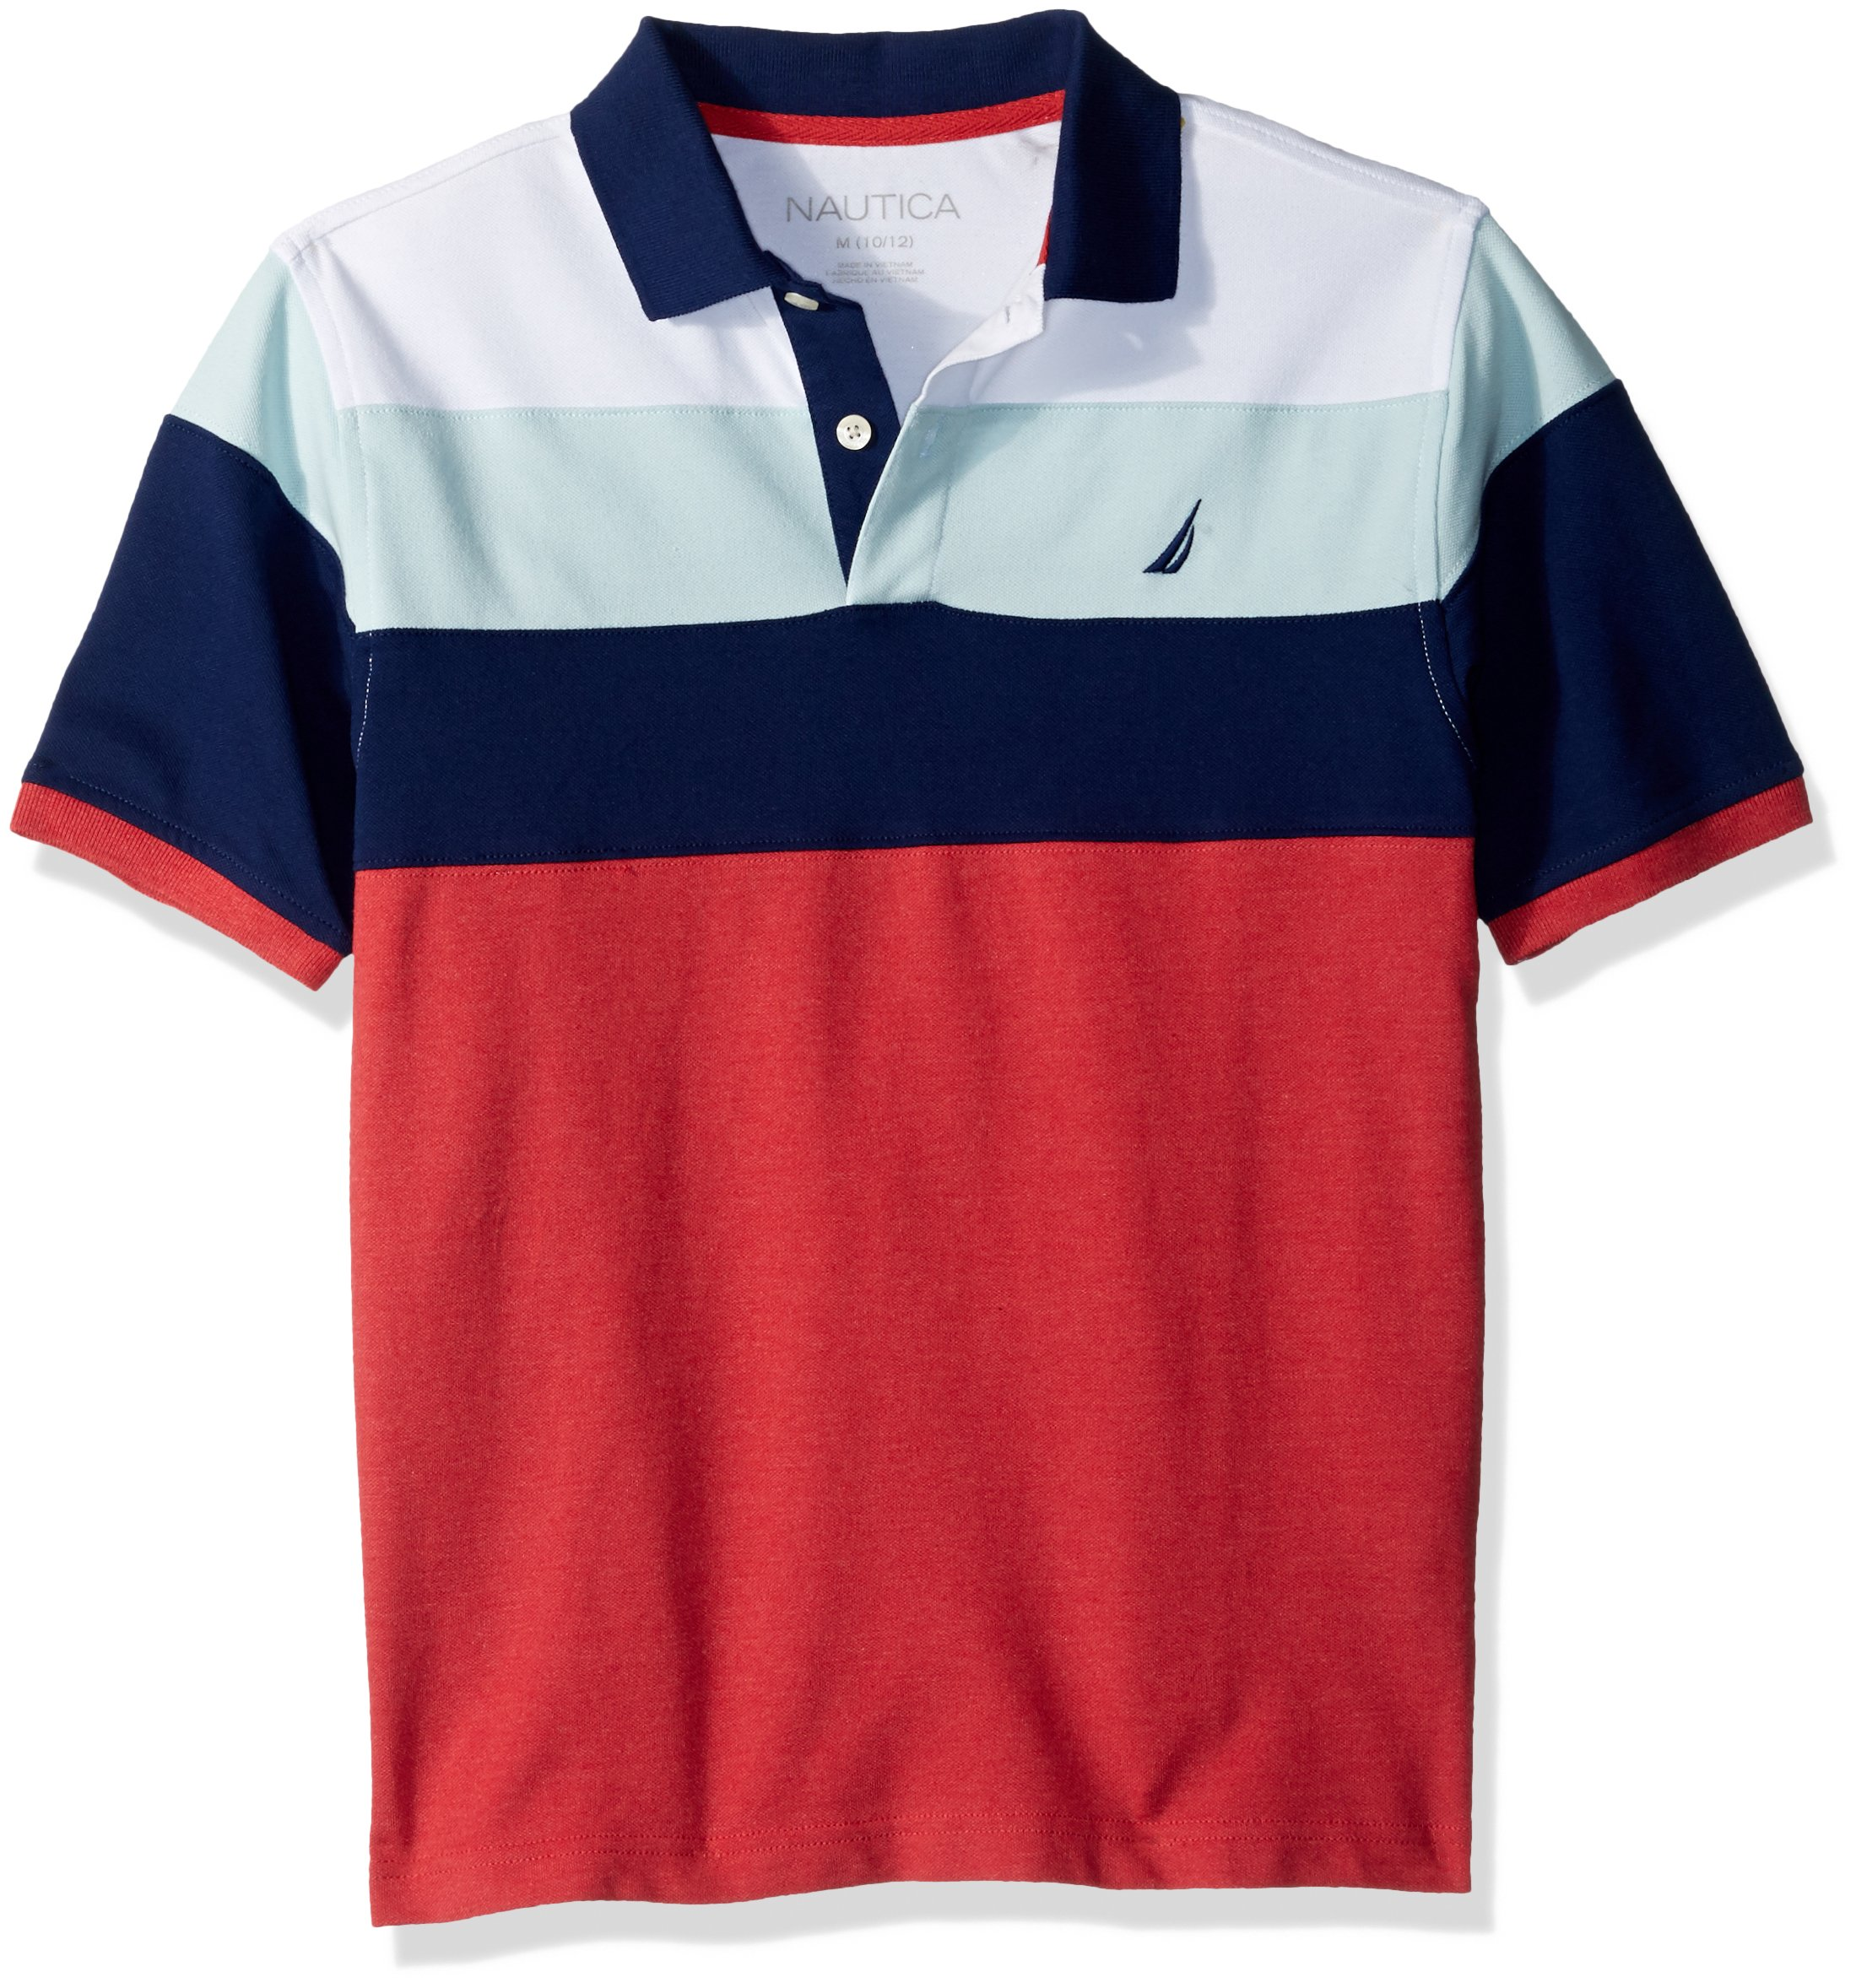 Nautica Boys' Short Sleeve Colorblock Deck Polo Shirt, Seacliff Ruby with Stretch, 7